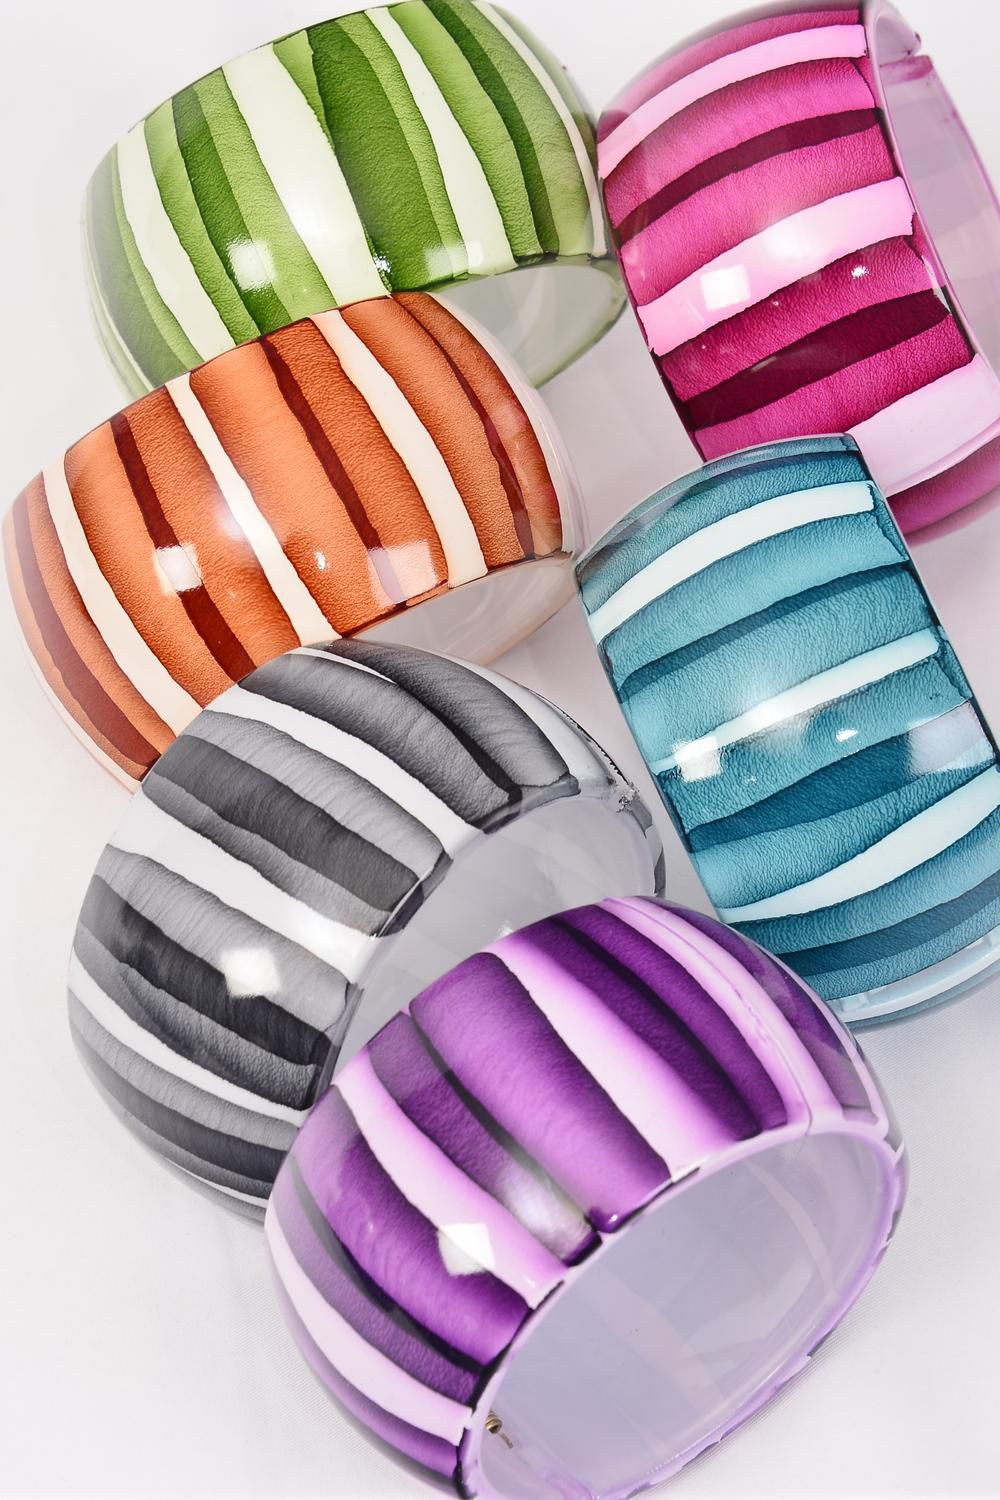 "Bangle Acrylic Wide Hinge Stripes Multi/DZ **Hinge** Size-2.75""x 1.75"" Dia Wide,2 of each Color Asst,Hang Tag & Opp Bag & UPC Code"